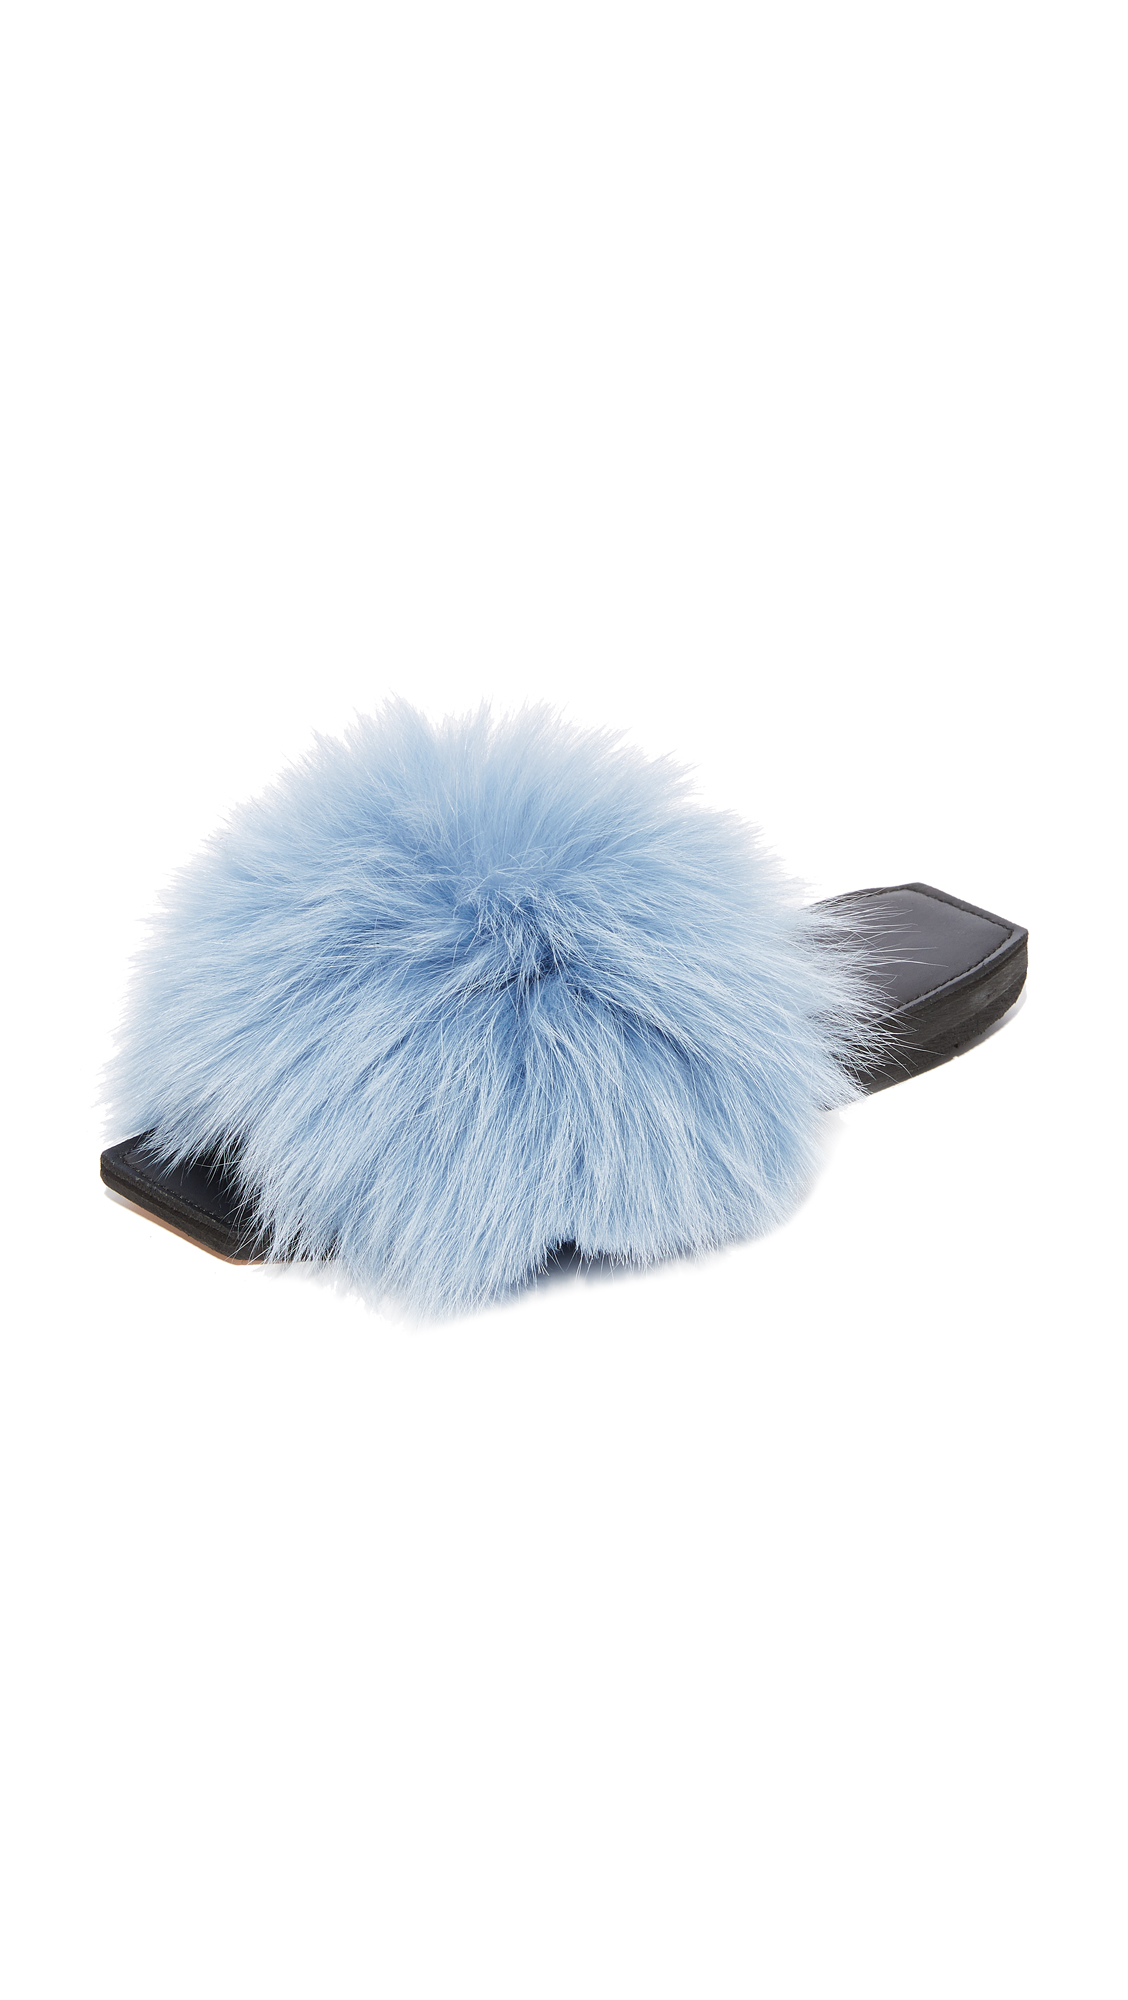 ONE by Furry Baby Slides - Blue Fur/Black